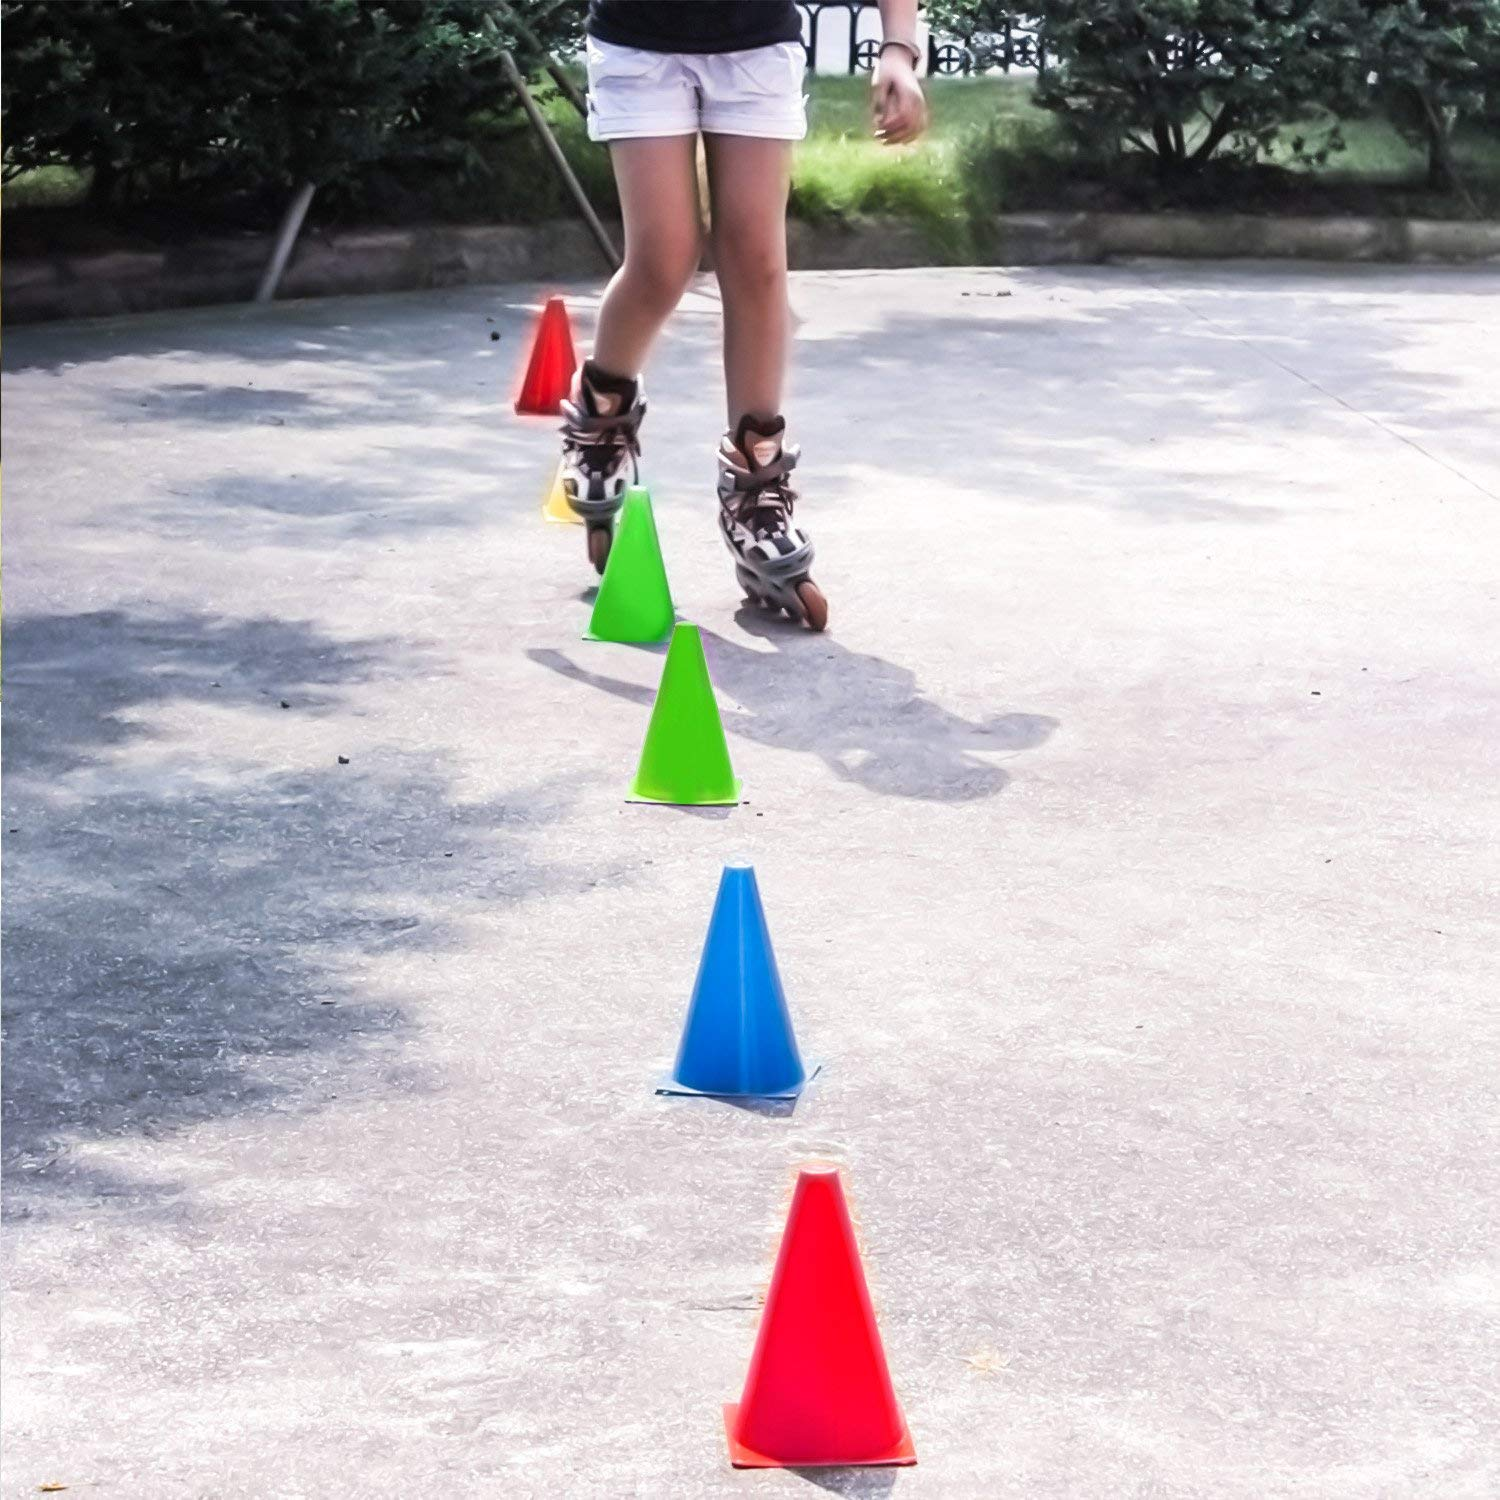 4 Colors Kuyou Sport Cones Football Training Cones Marker Traffic Cone Set 12 Pack For Kids Home Gym Soccer